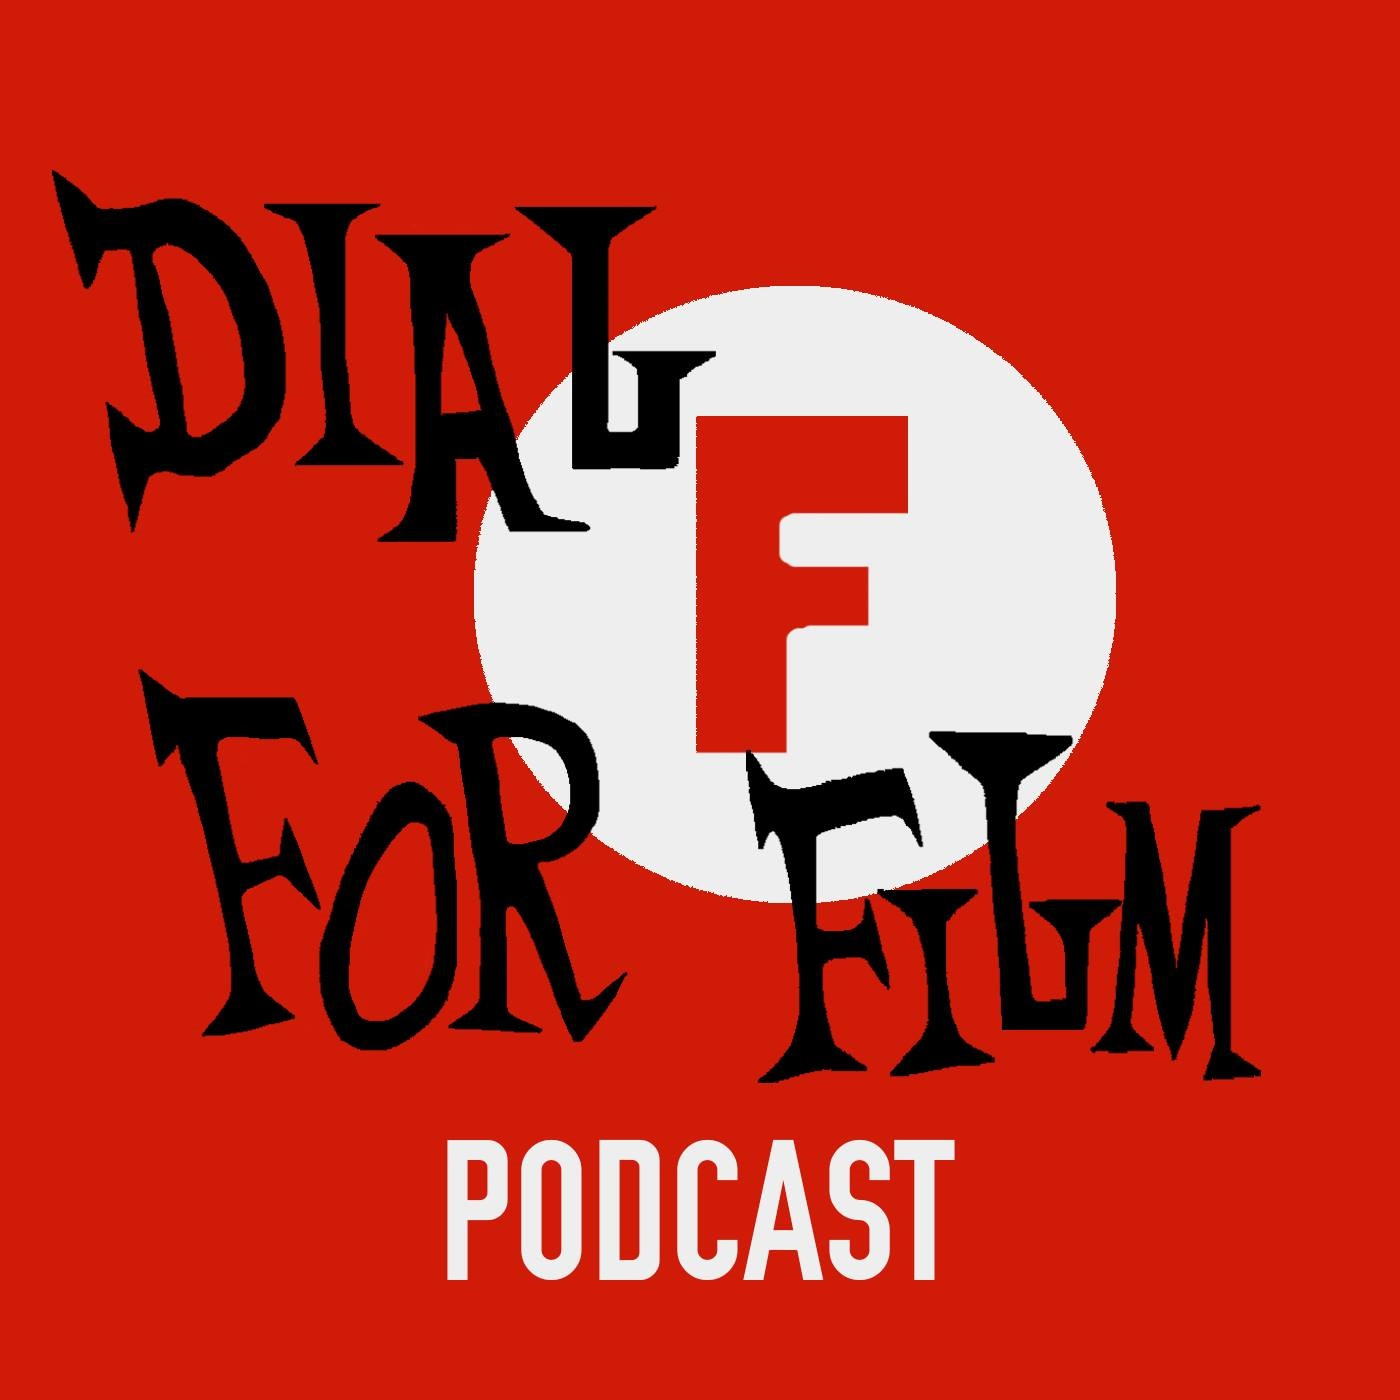 Dial F for Film Podcast | Listen Free on Castbox